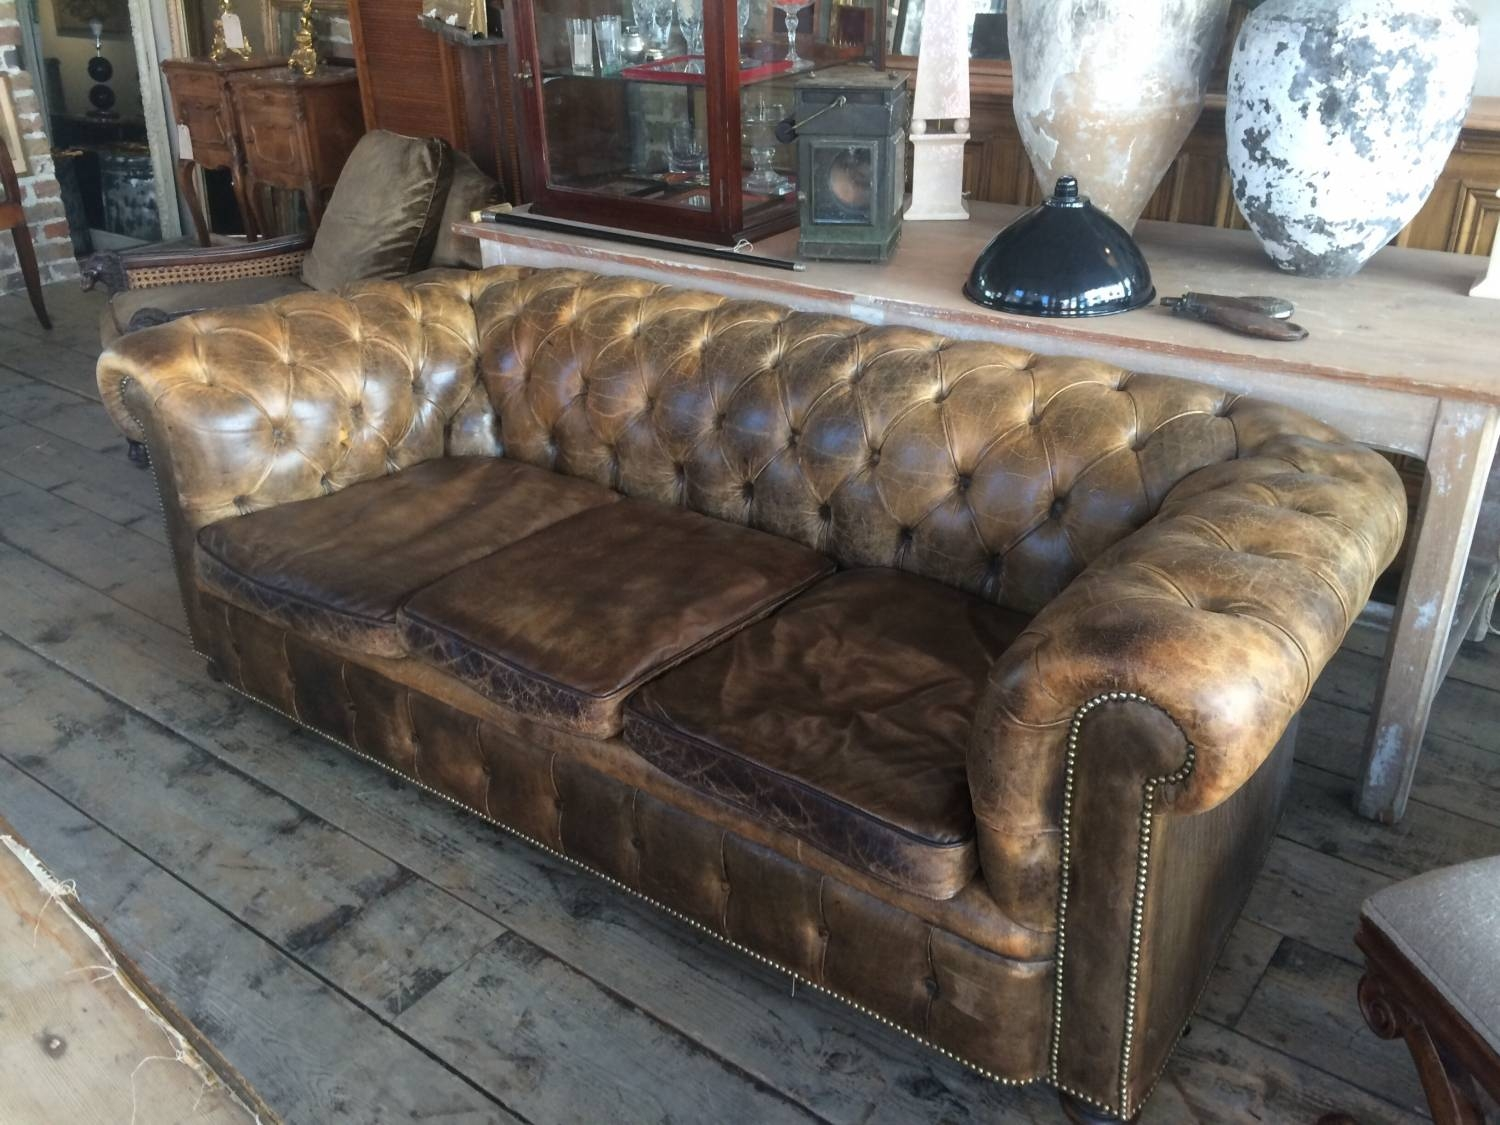 Vintage Chesterfield Sofa In Furniture with regard to Vintage Chesterfield Sofas (Image 22 of 30)